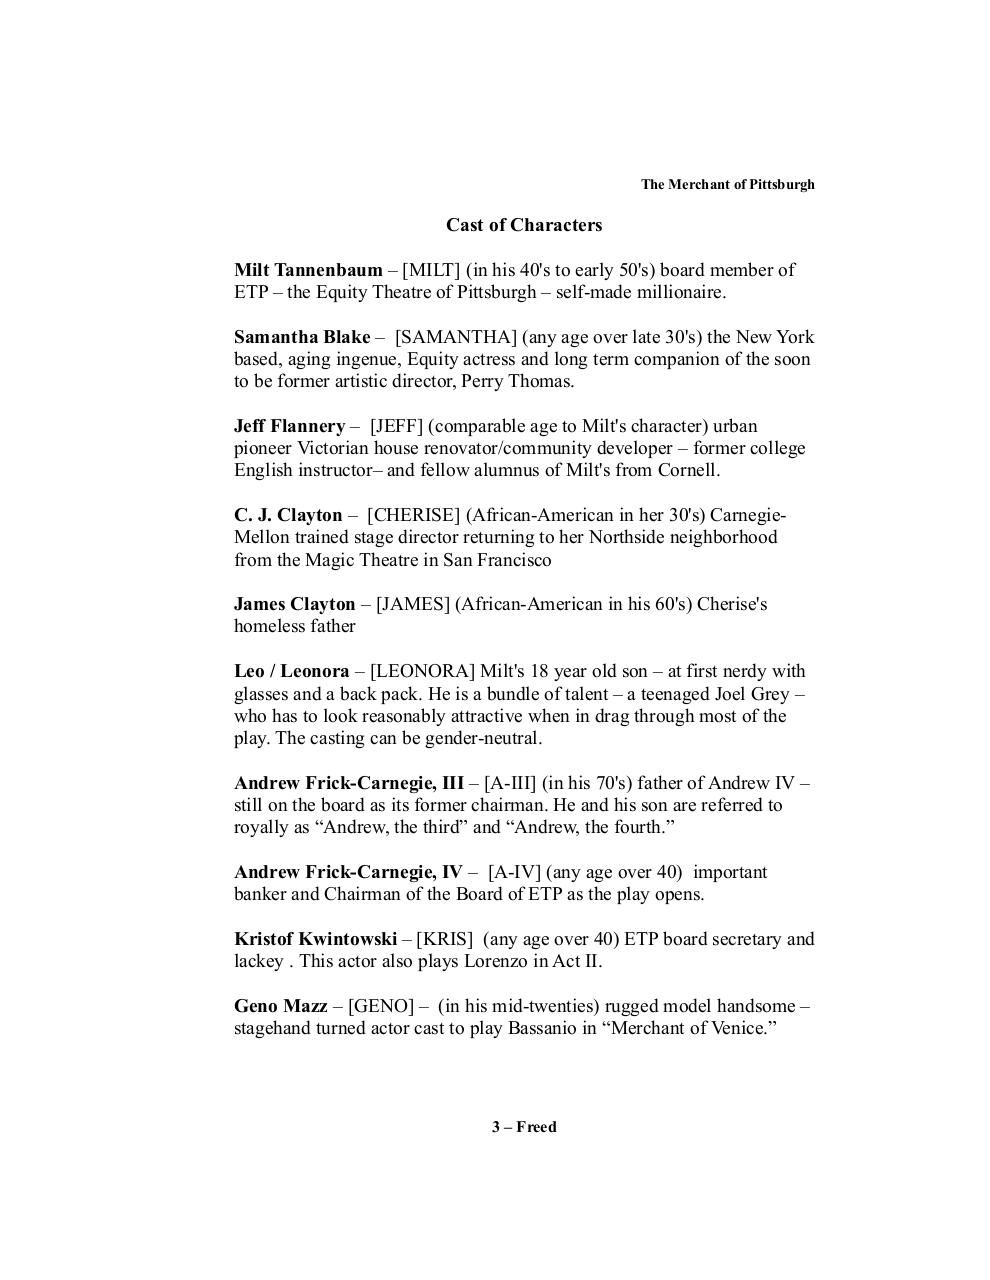 The Merchant of Pittsburgh -- A Comedy.Freed.06-04-2018.rev4.pdf - page 3/99